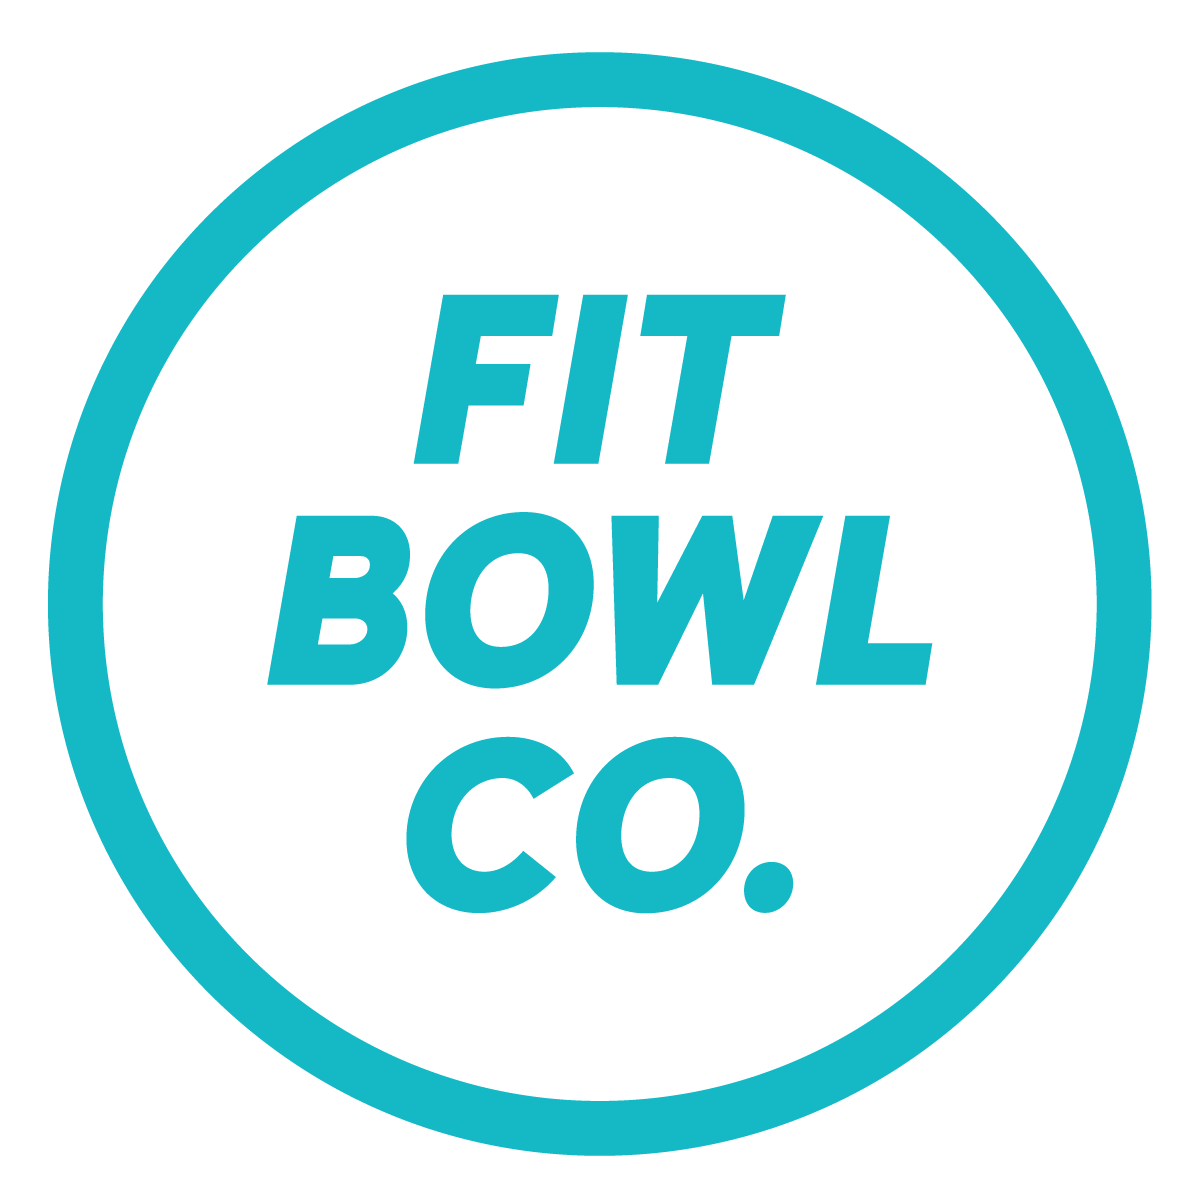 Fit Bowl Co. | Acai Bowls | Tampa